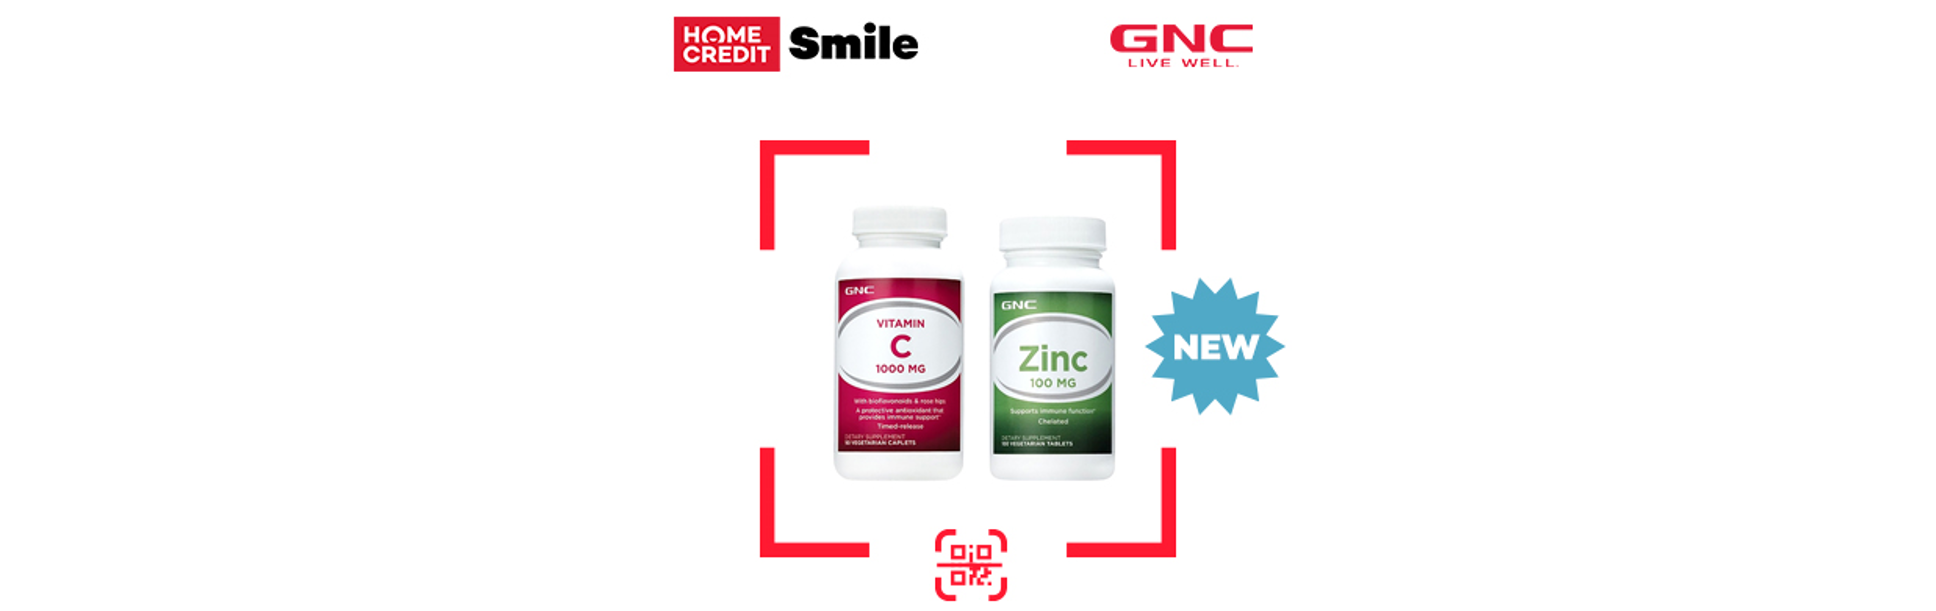 BOOST YOUR BODY + SAVE YOUR WALLET: UP TO 35% OFF* GNC HEALTH SUPPLEMENTS